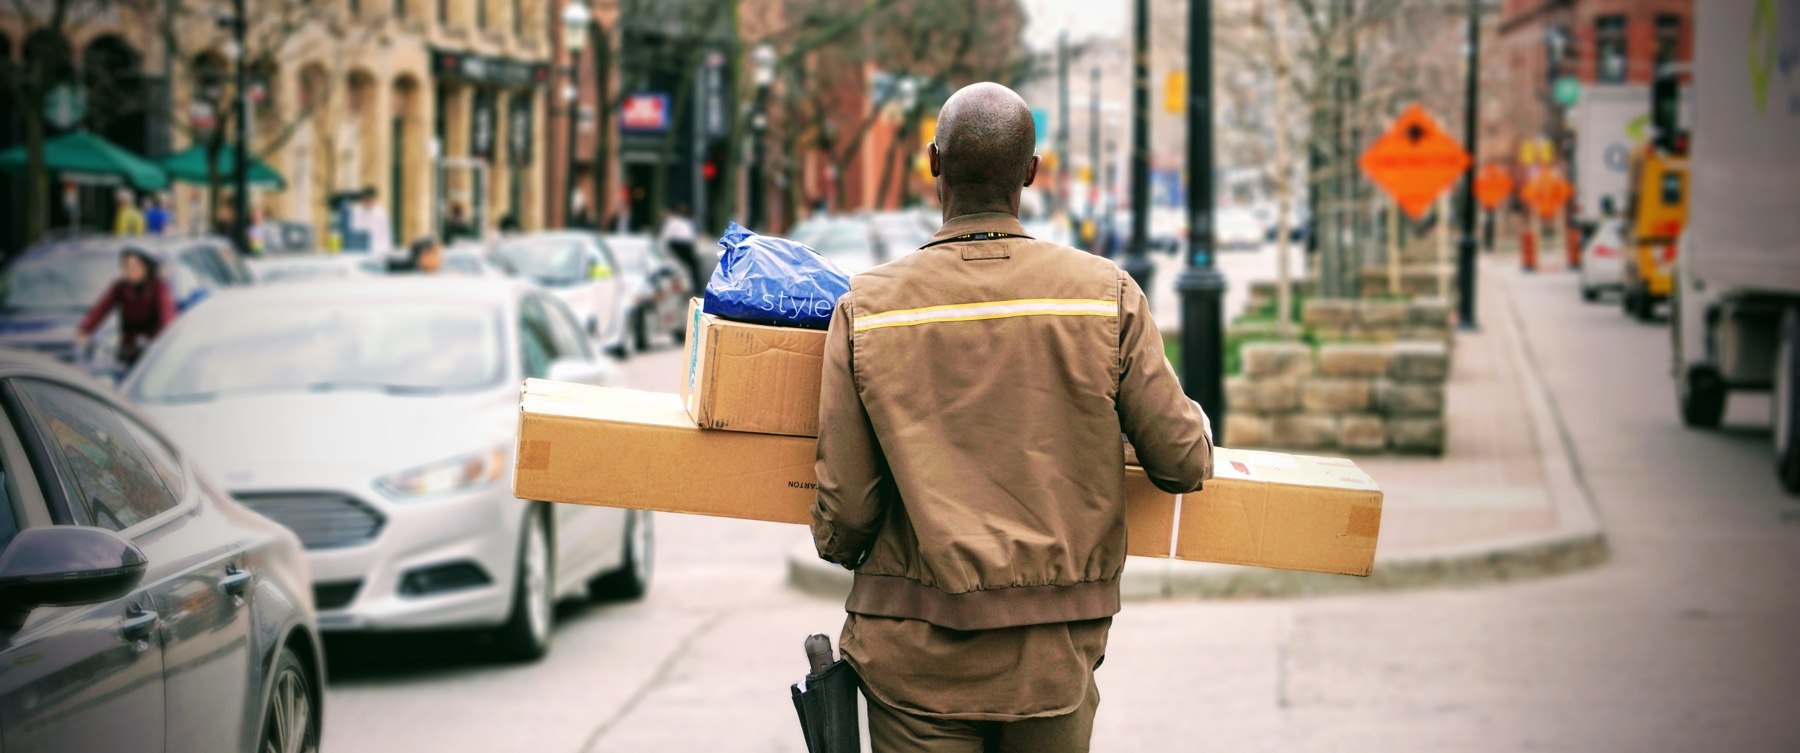 For UPS, Delivering Solutions Is Key to Its Growth and Success